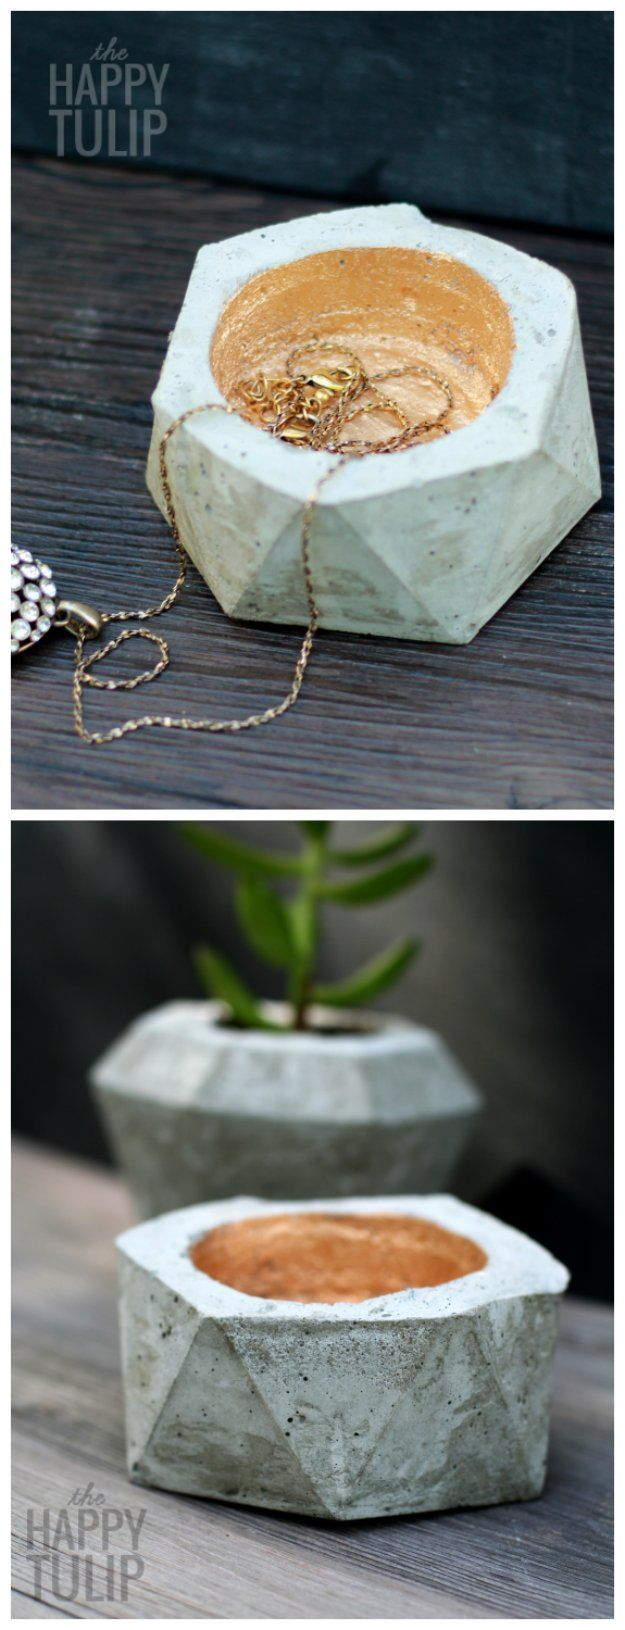 43 DIY concrete crafts -   Crafts to make and sell - DIY Geometric Concrete Jewelry Holders- Cheap and creative projects and tutorials for countertops and ideas for floors, patio and porch decor, tables, planters, vases, frames, jewelry holder, home decor and DIY gifts.  http://diyjoy.com/diy-concrete-crafts-projects-